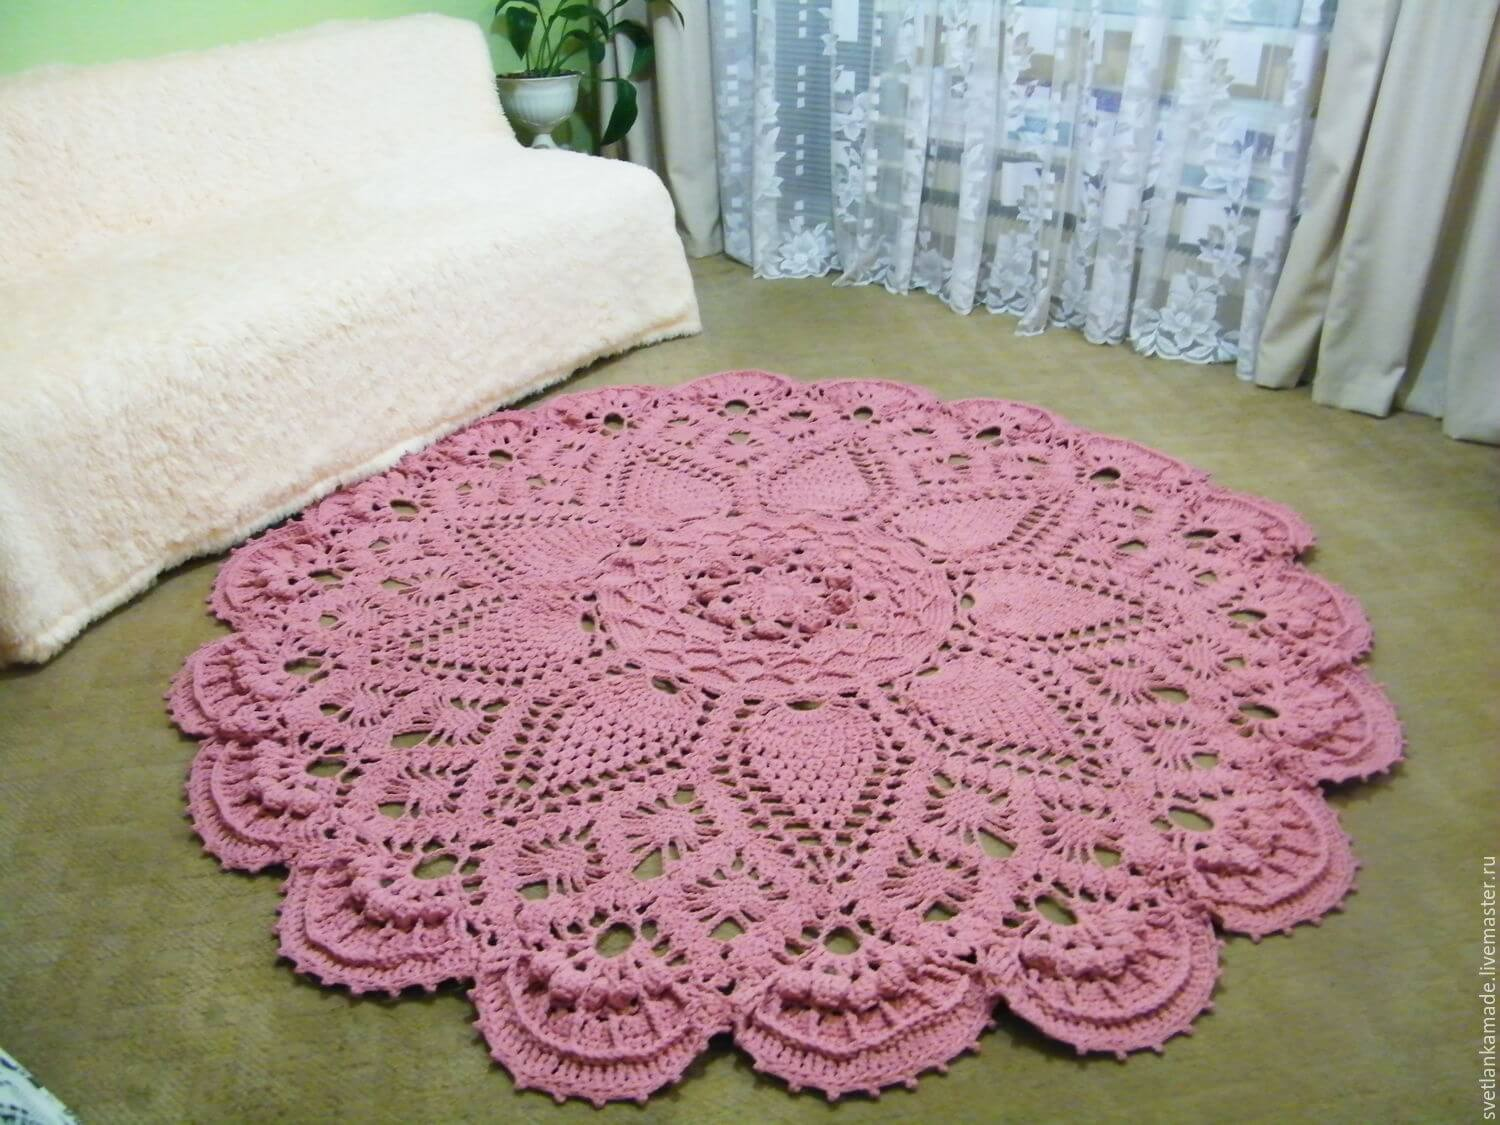 Crochet String Rug Learn How To Make Amazing Model